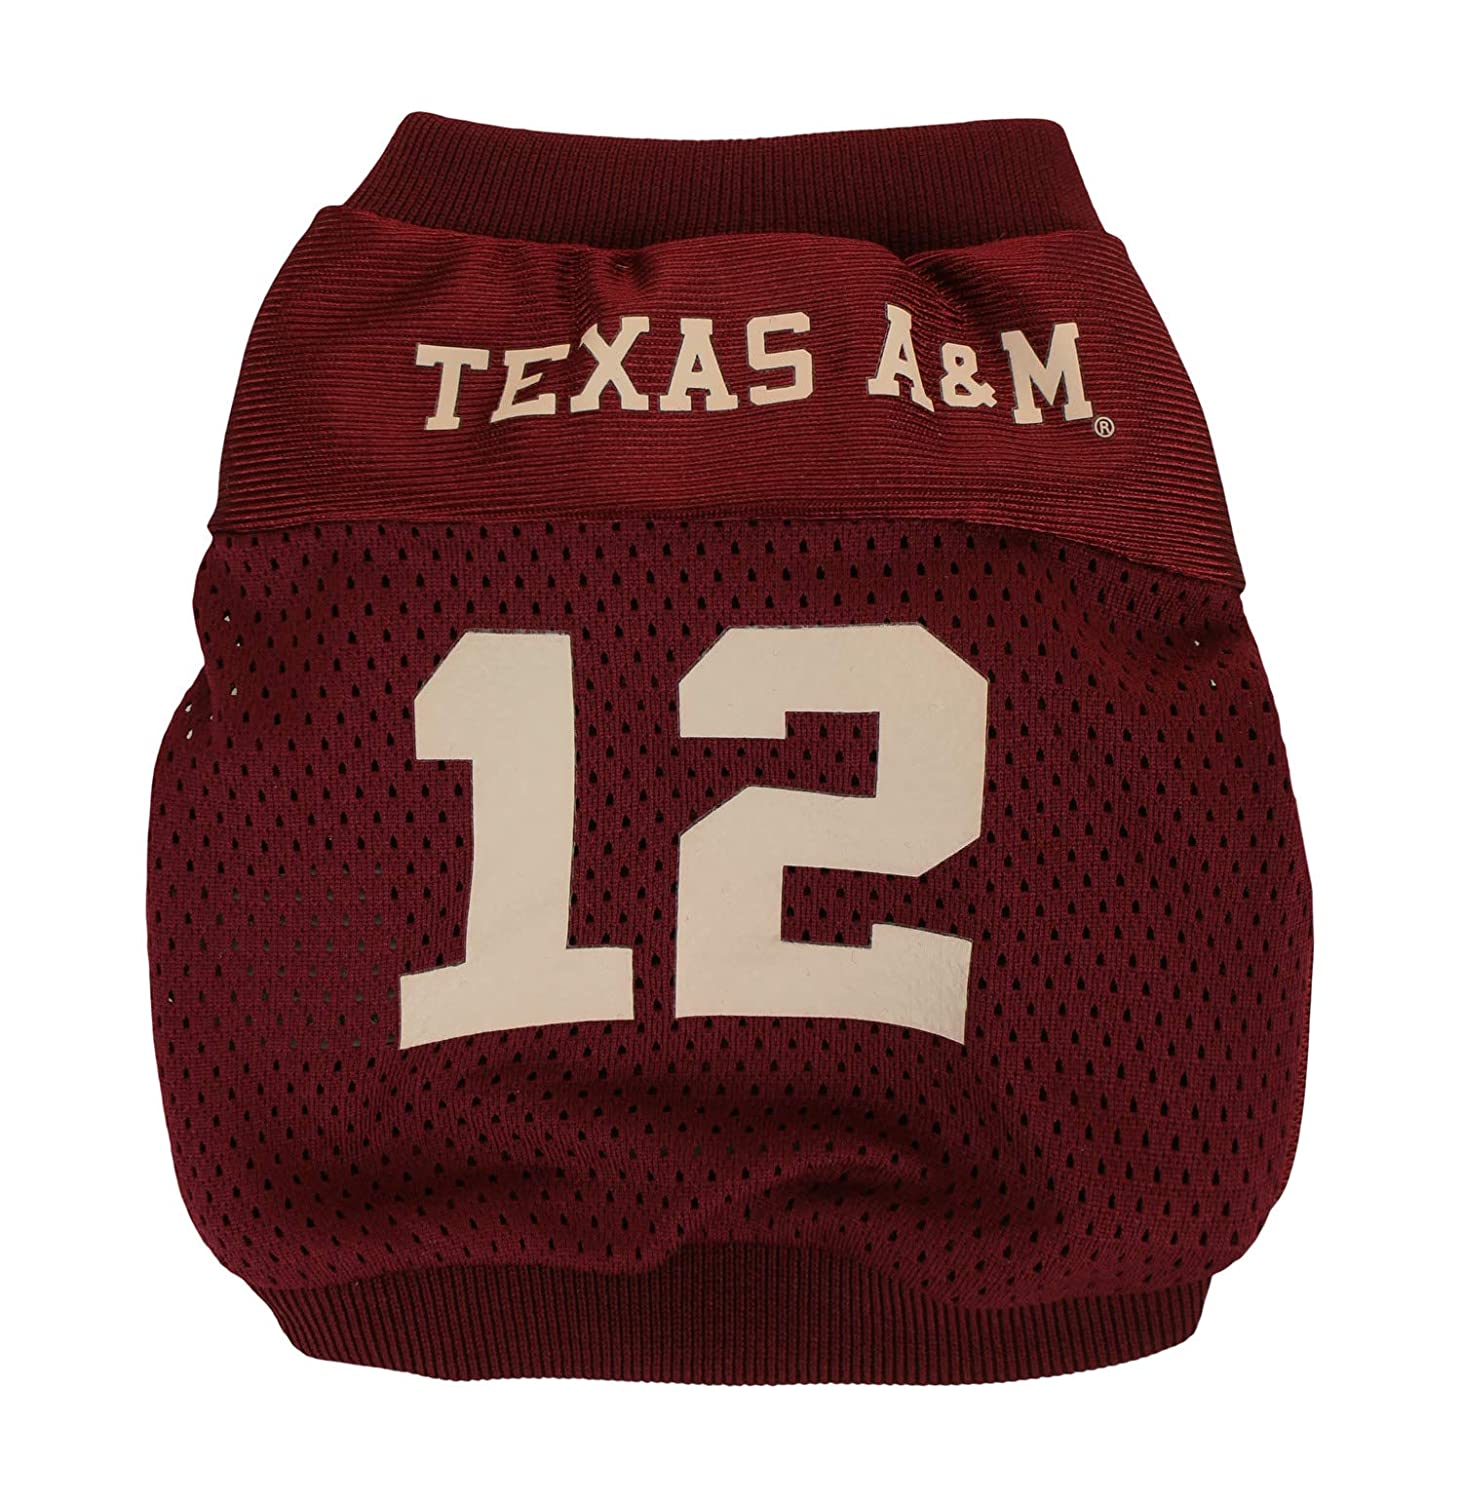 Sporty K9 NCAA Football Dog Jersey